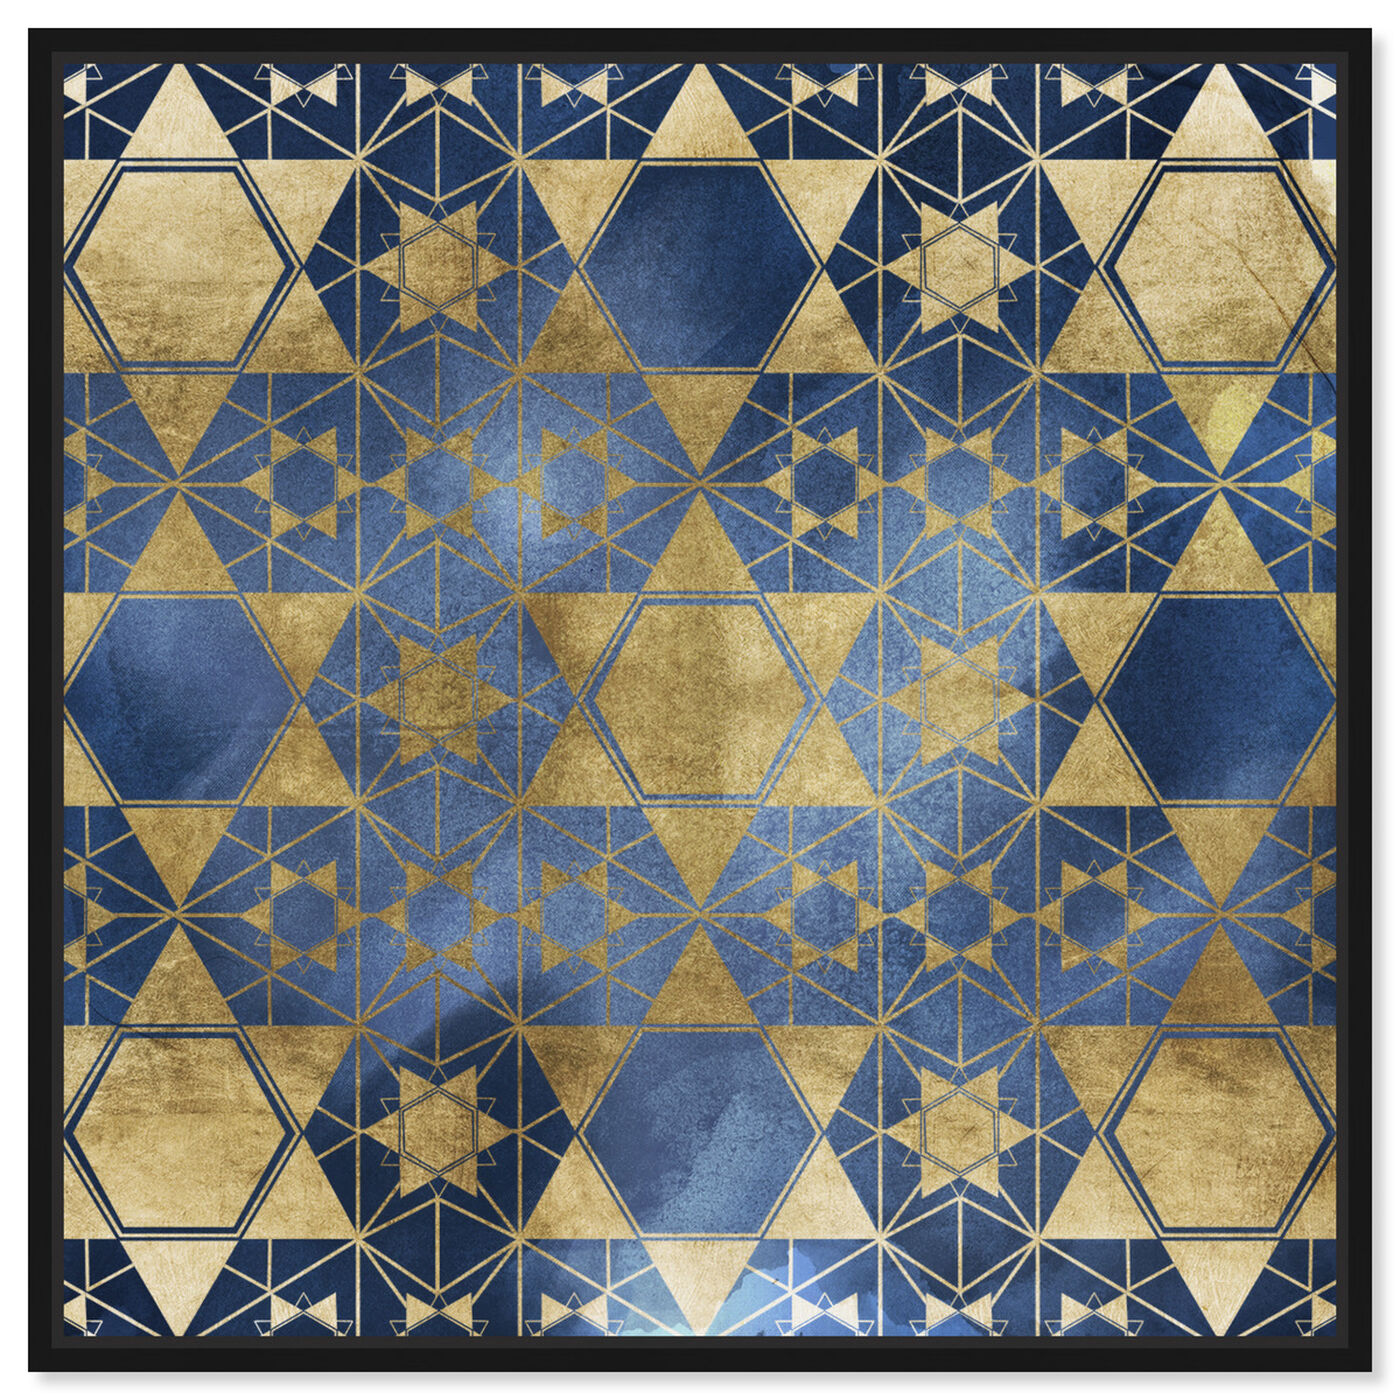 Front view of Golden Blue Star Decorative featuring abstract and patterns art.